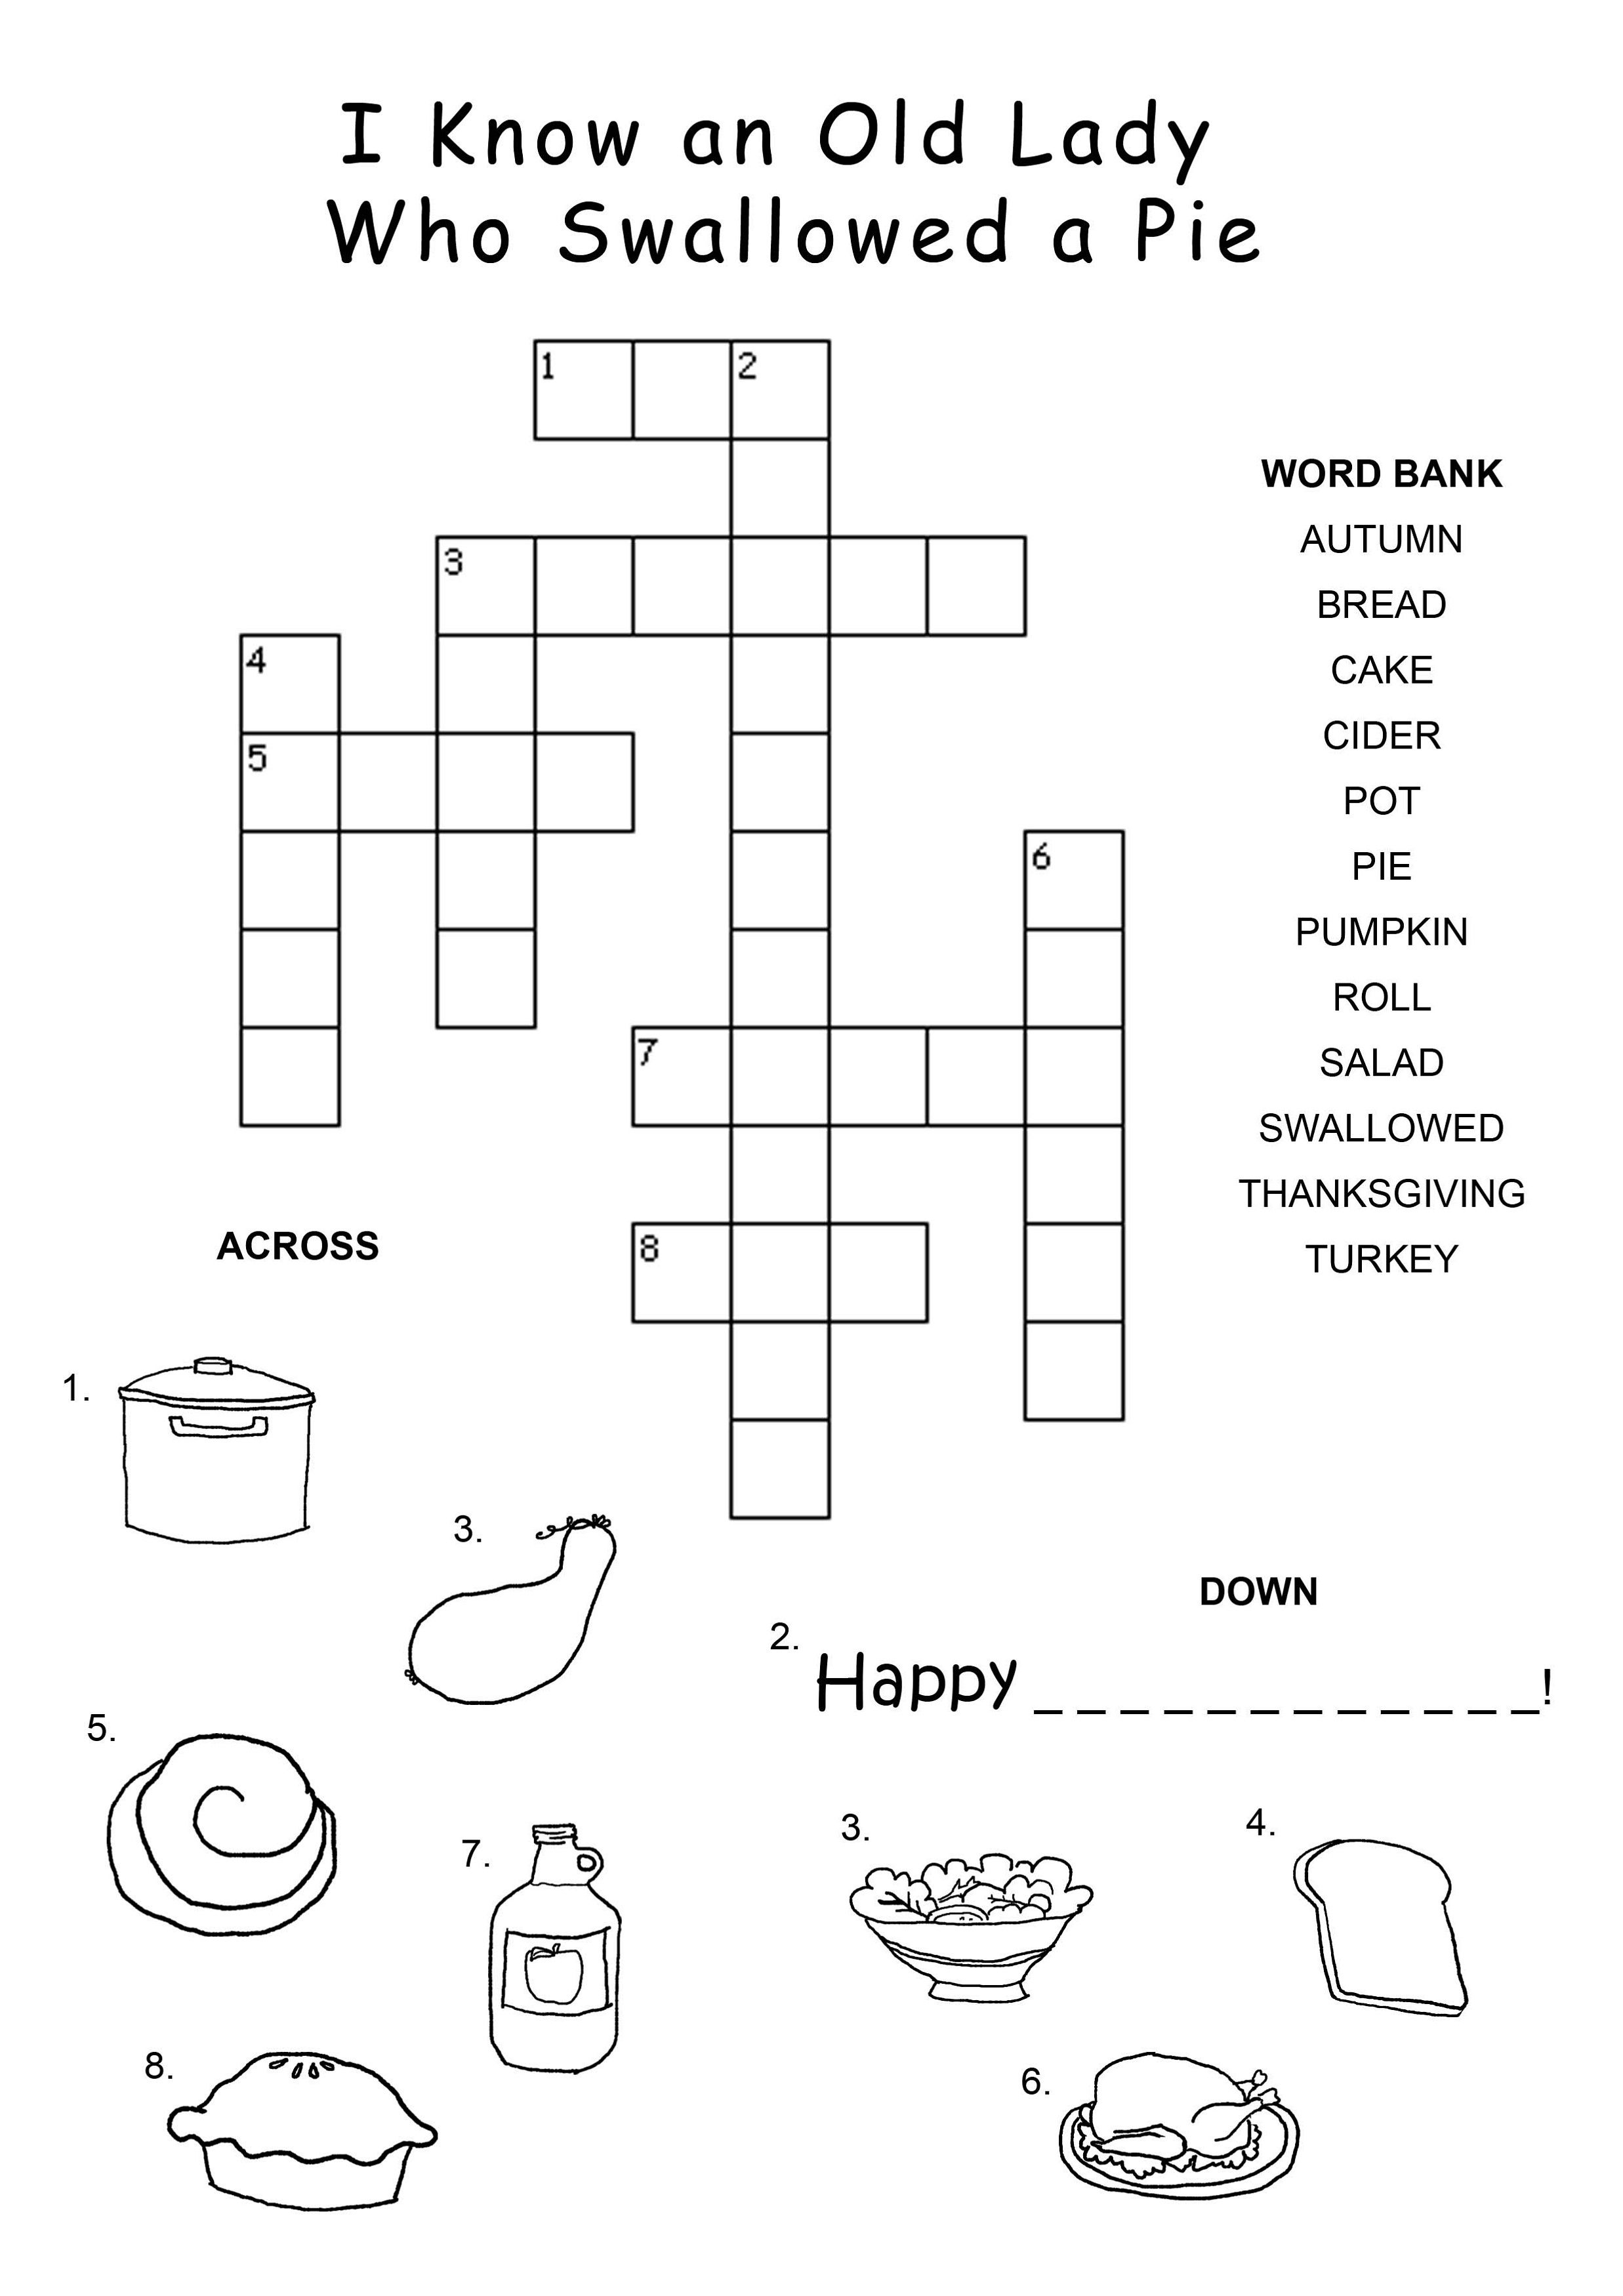 Crossword Puzzles For Kids - Best Coloring Pages For Kids - Printable Crossword Puzzles For Middle Schoolers